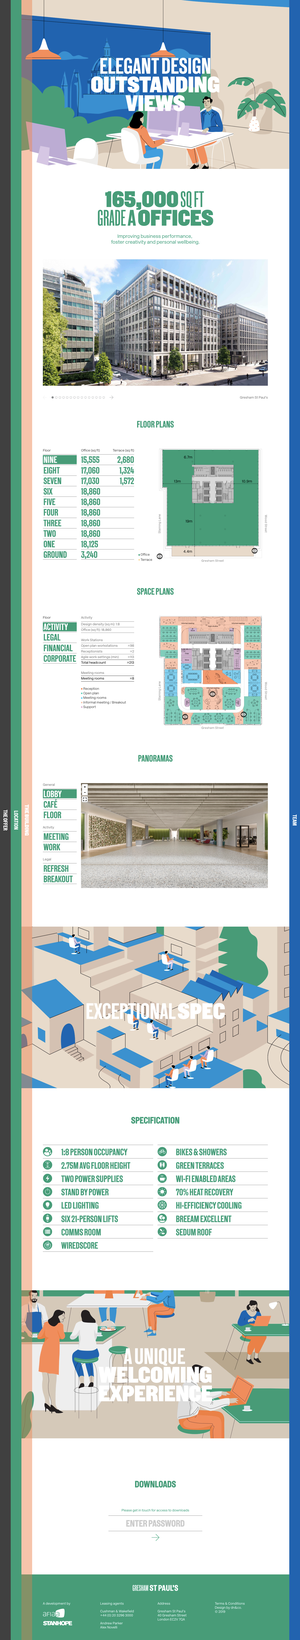 Desktop view of the Building template, which shows the various features and specifications of the development